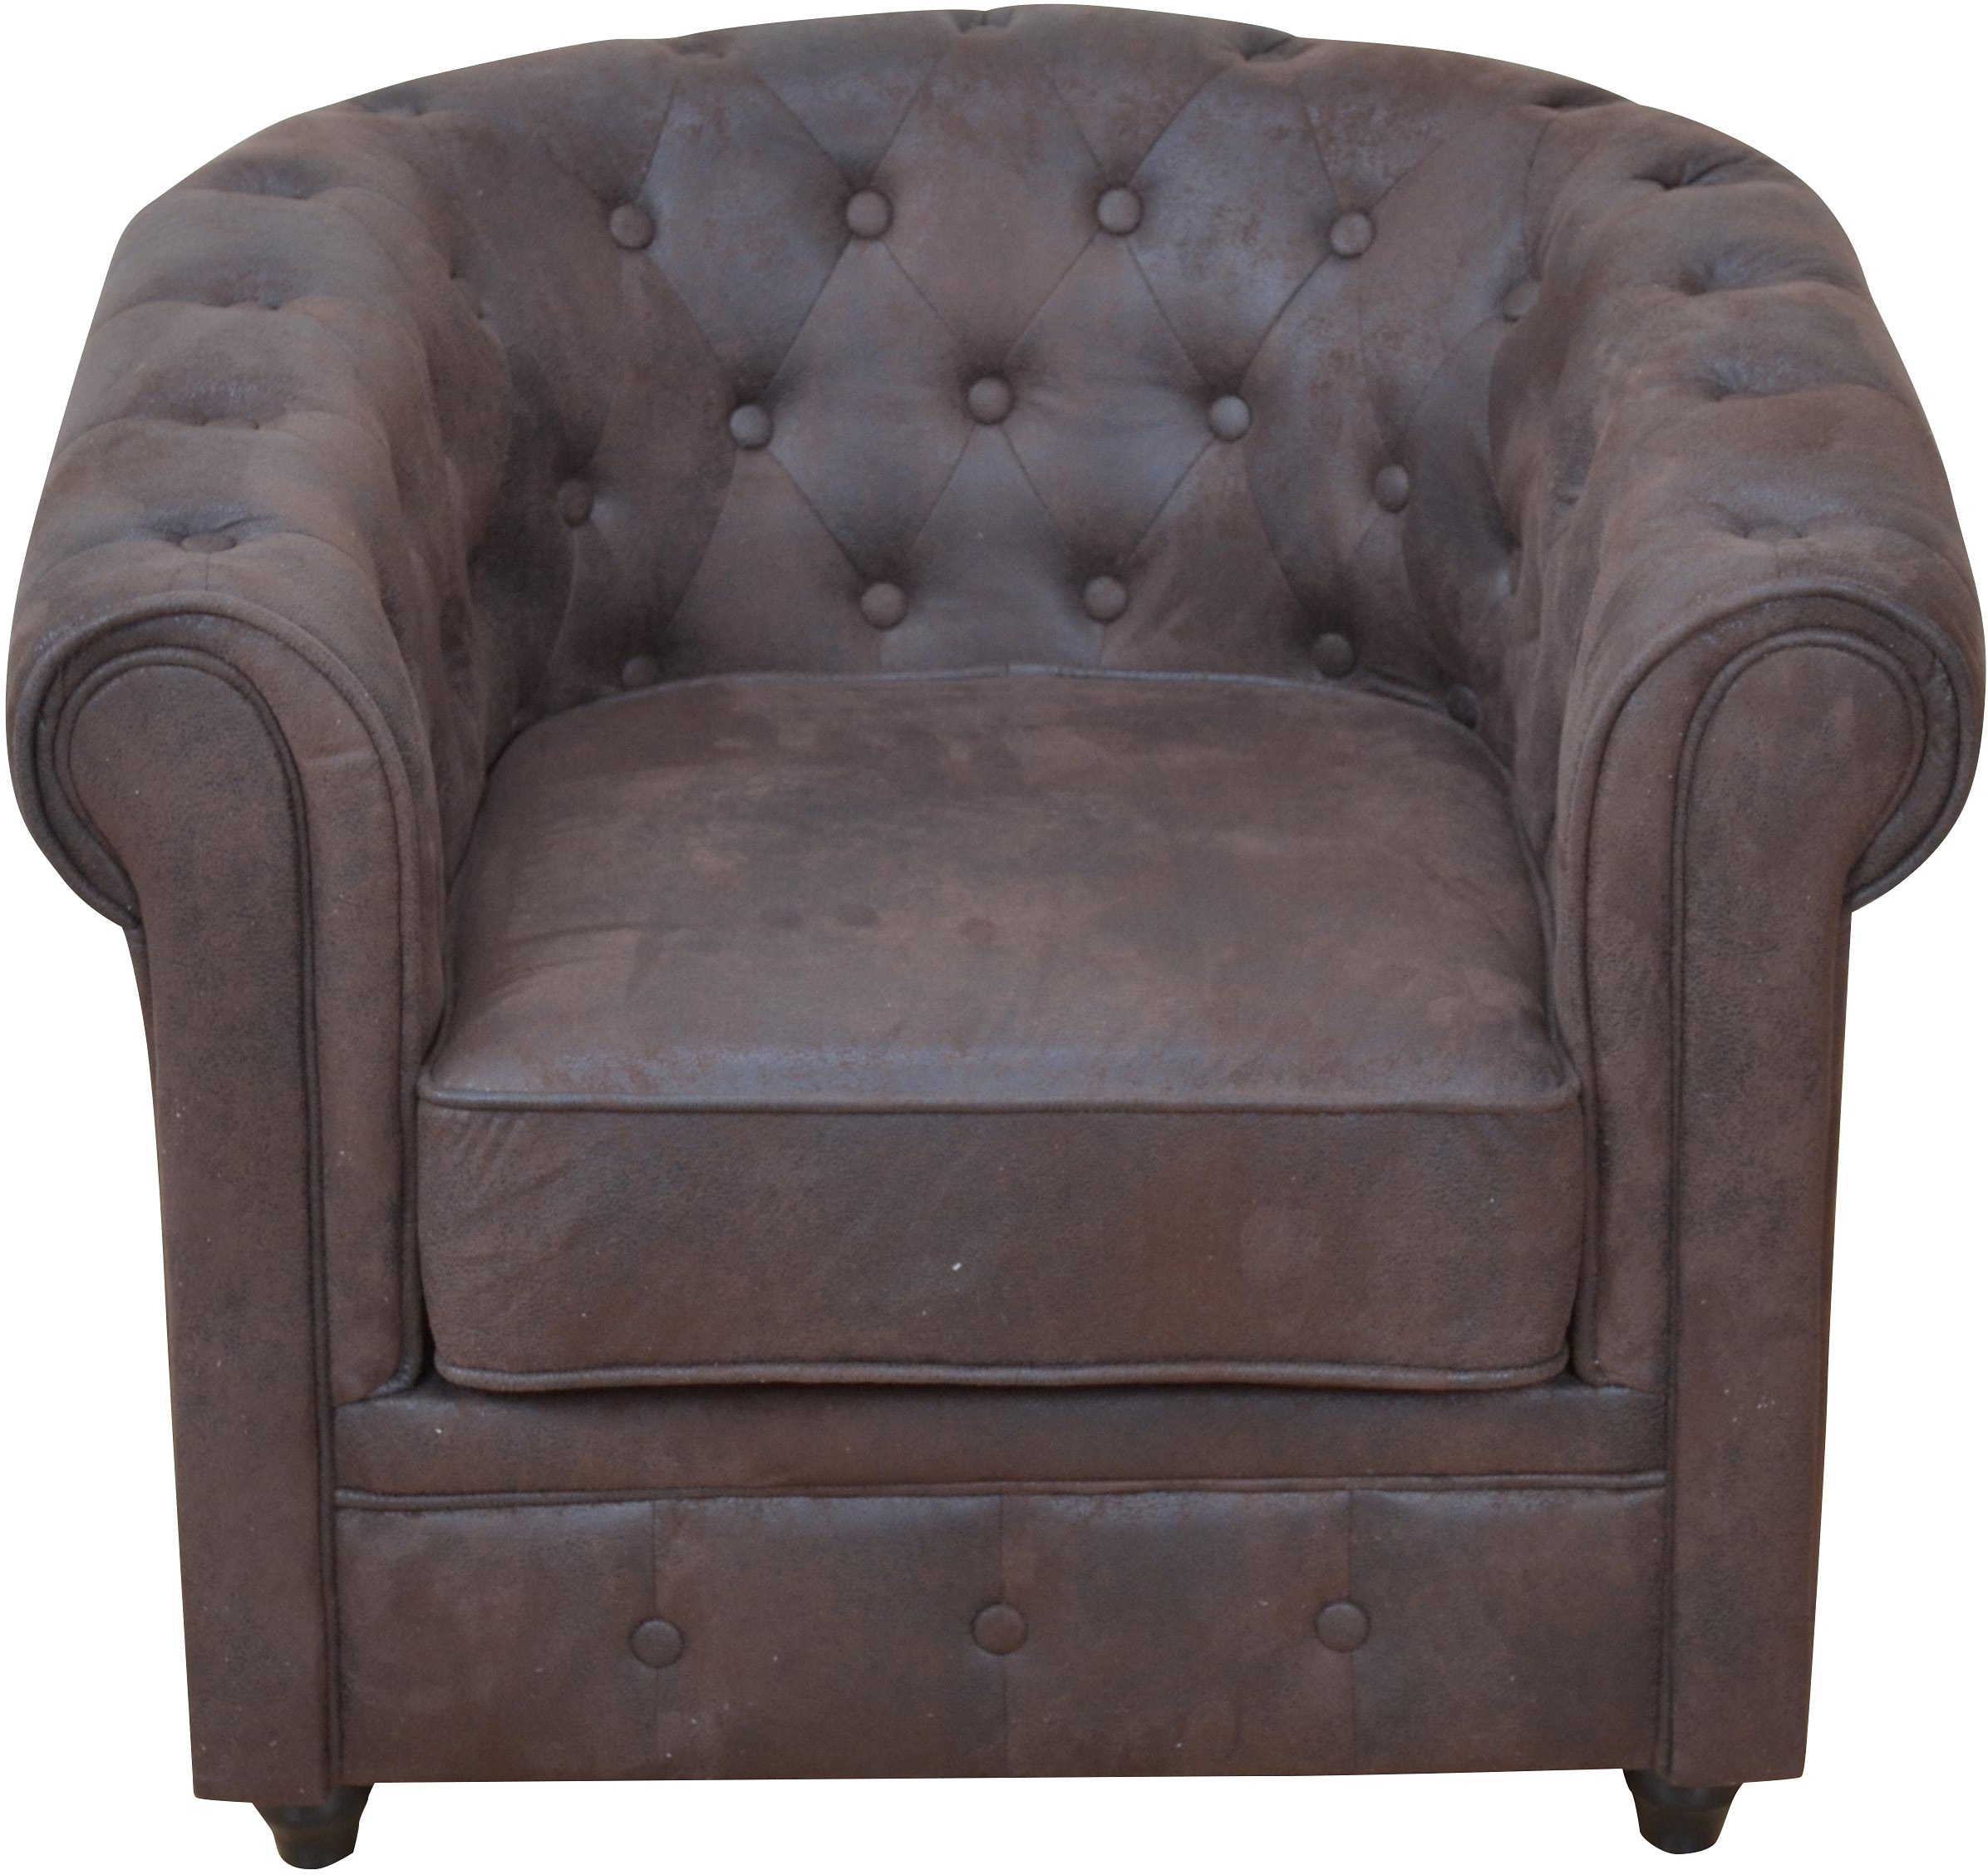 Home affaire, Sessel, mit Chesterfield Knopfsteppung